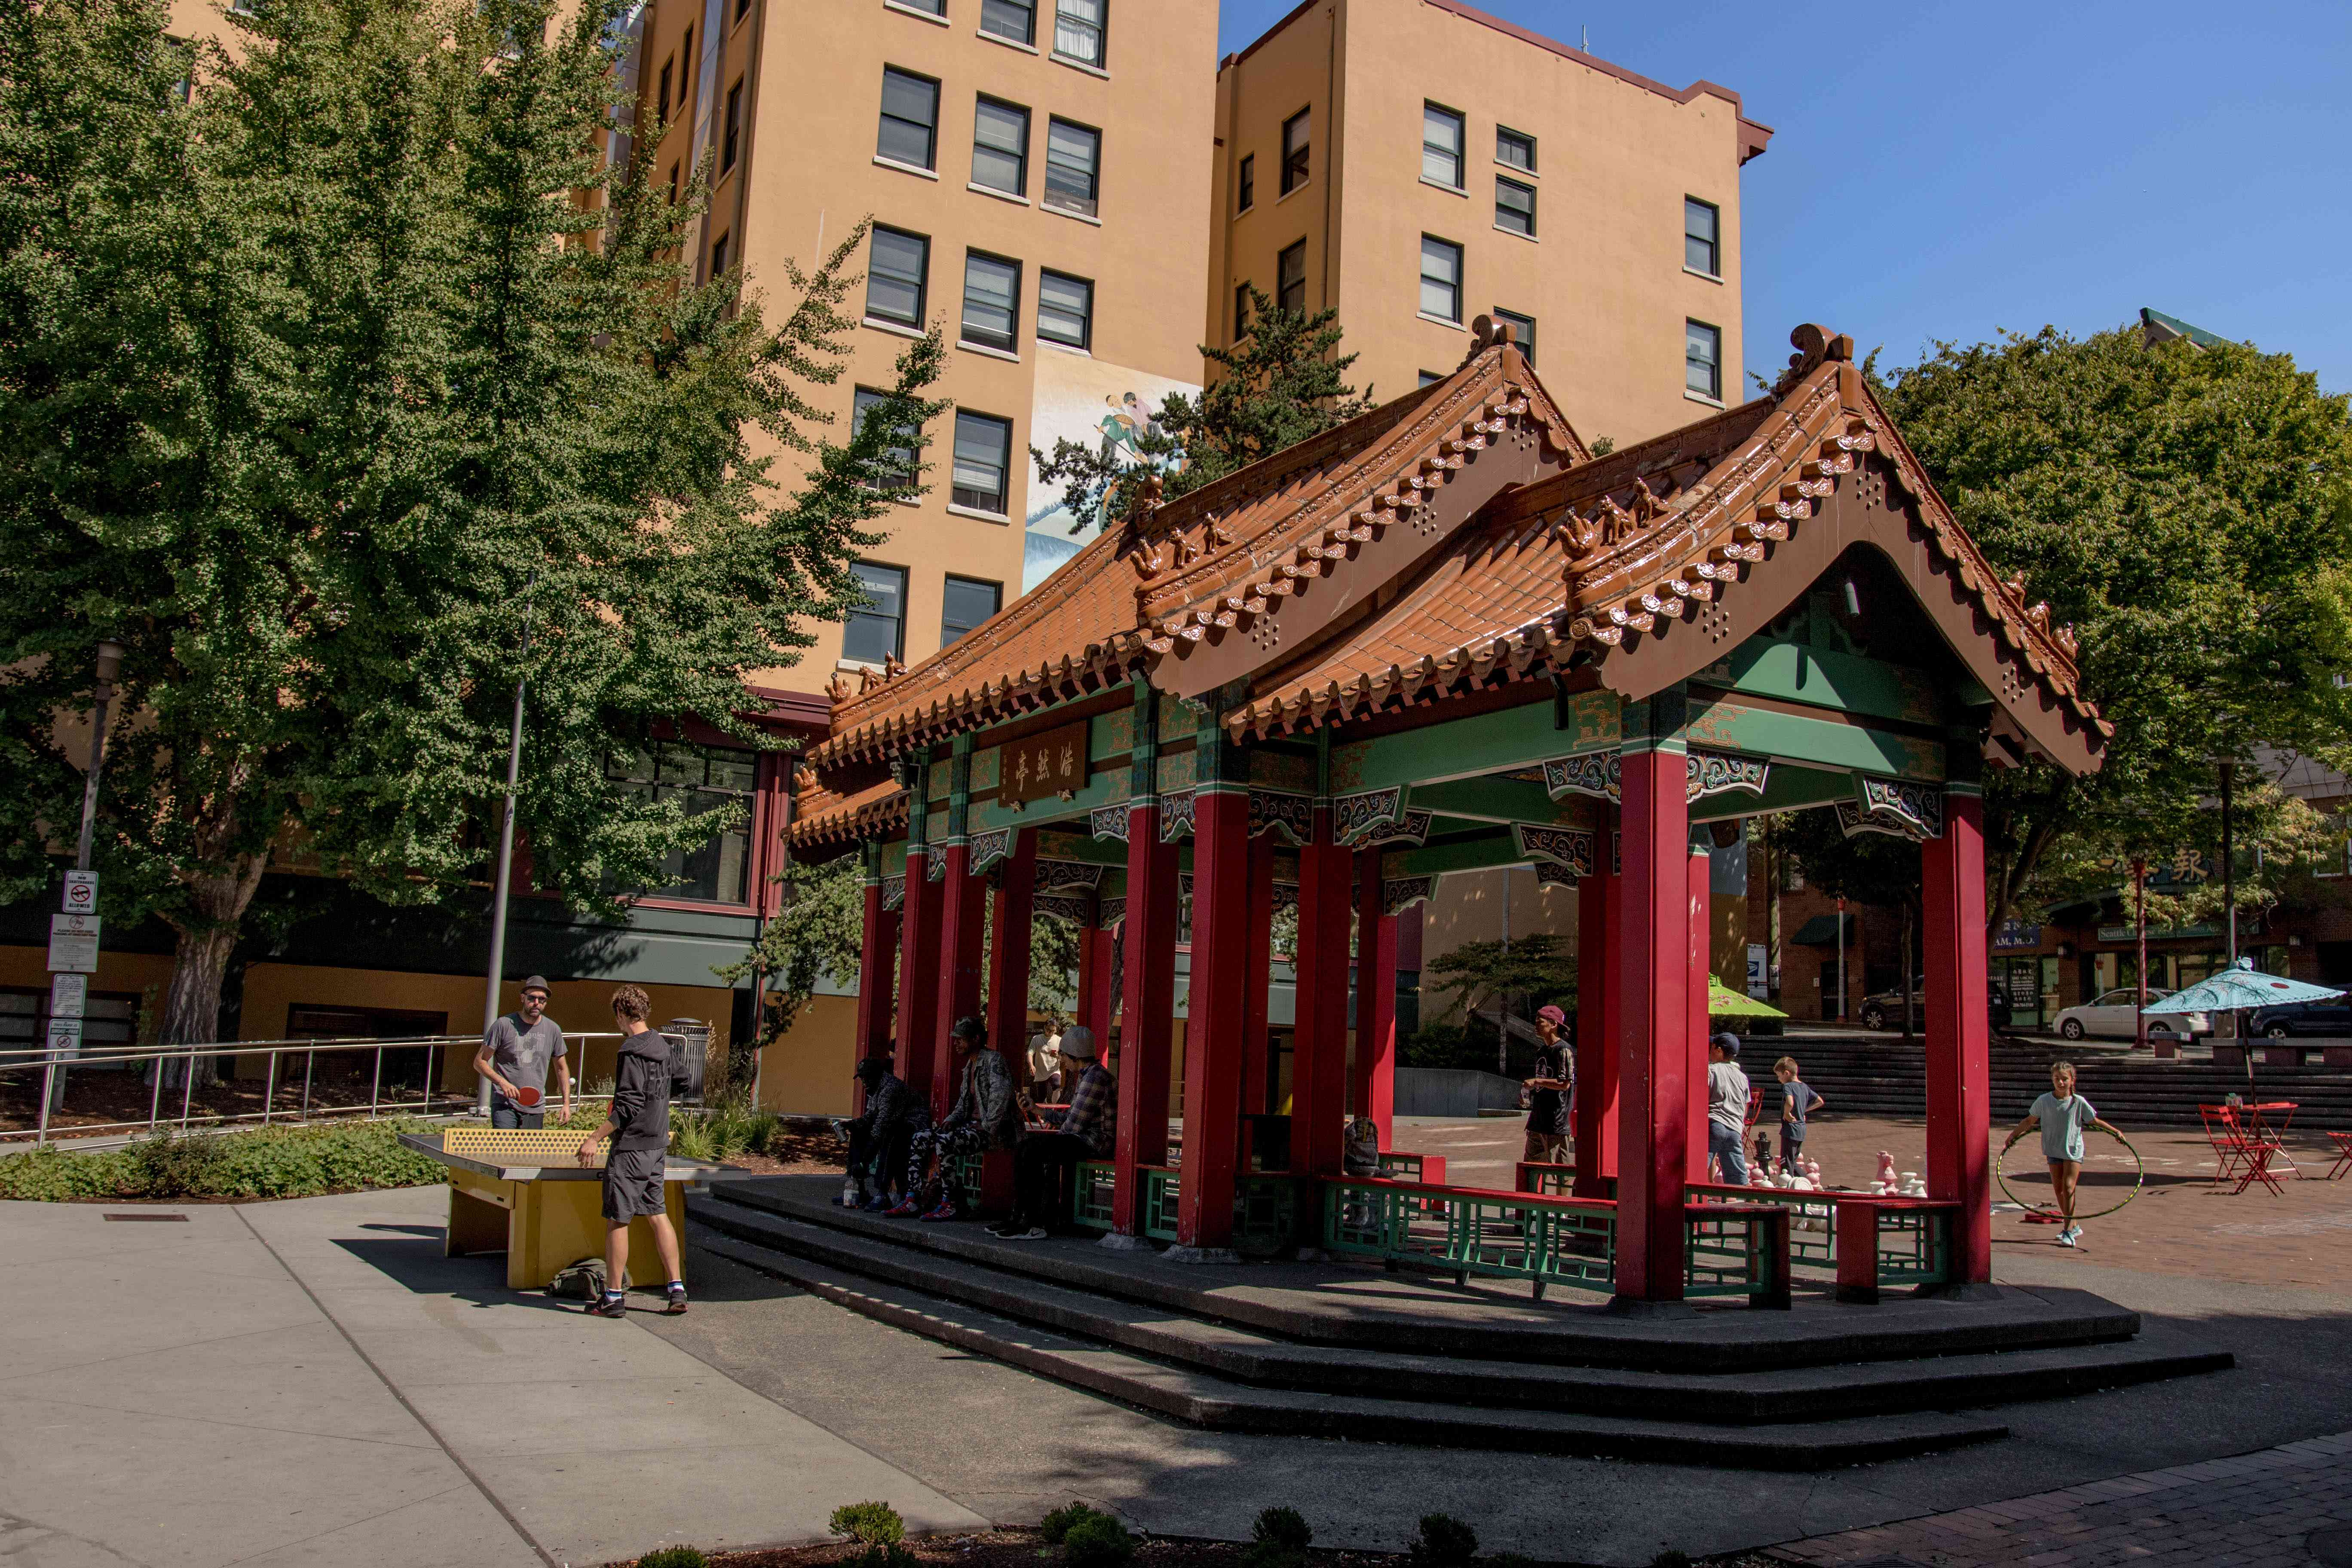 Hing Hay Park in Chinatown, Seattle